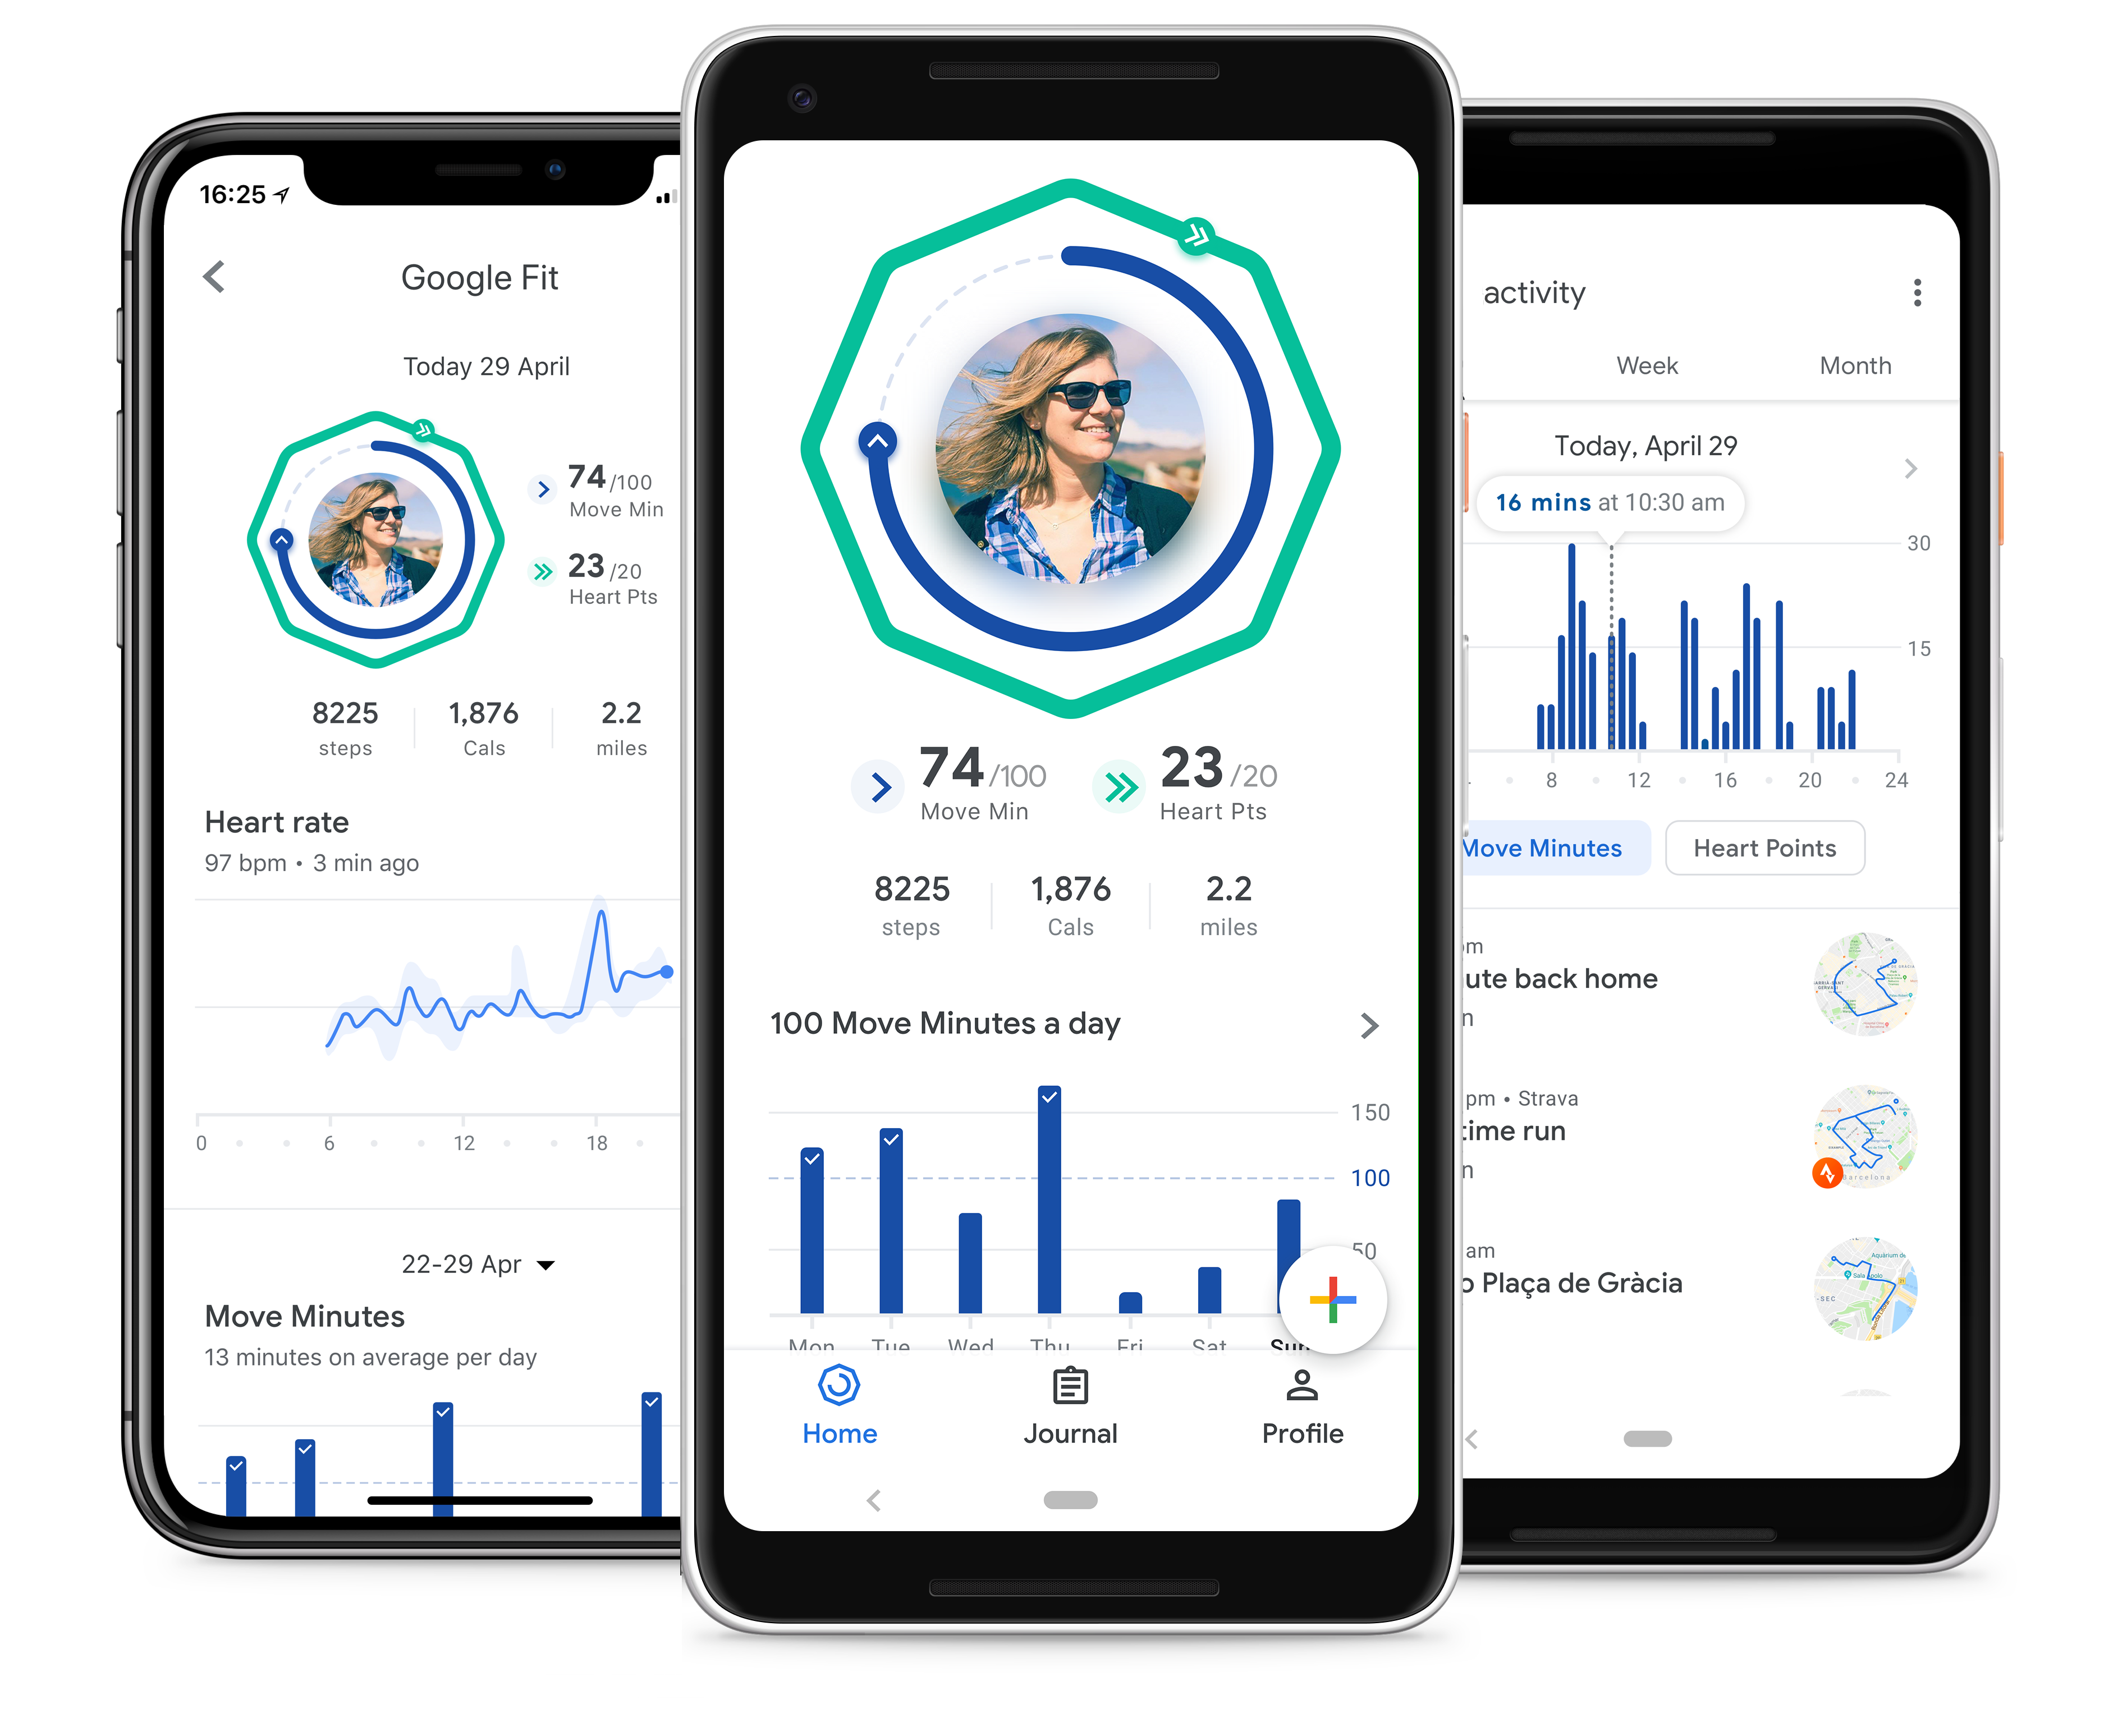 Google Fit screens showing Heart Points and Move Minutes features.